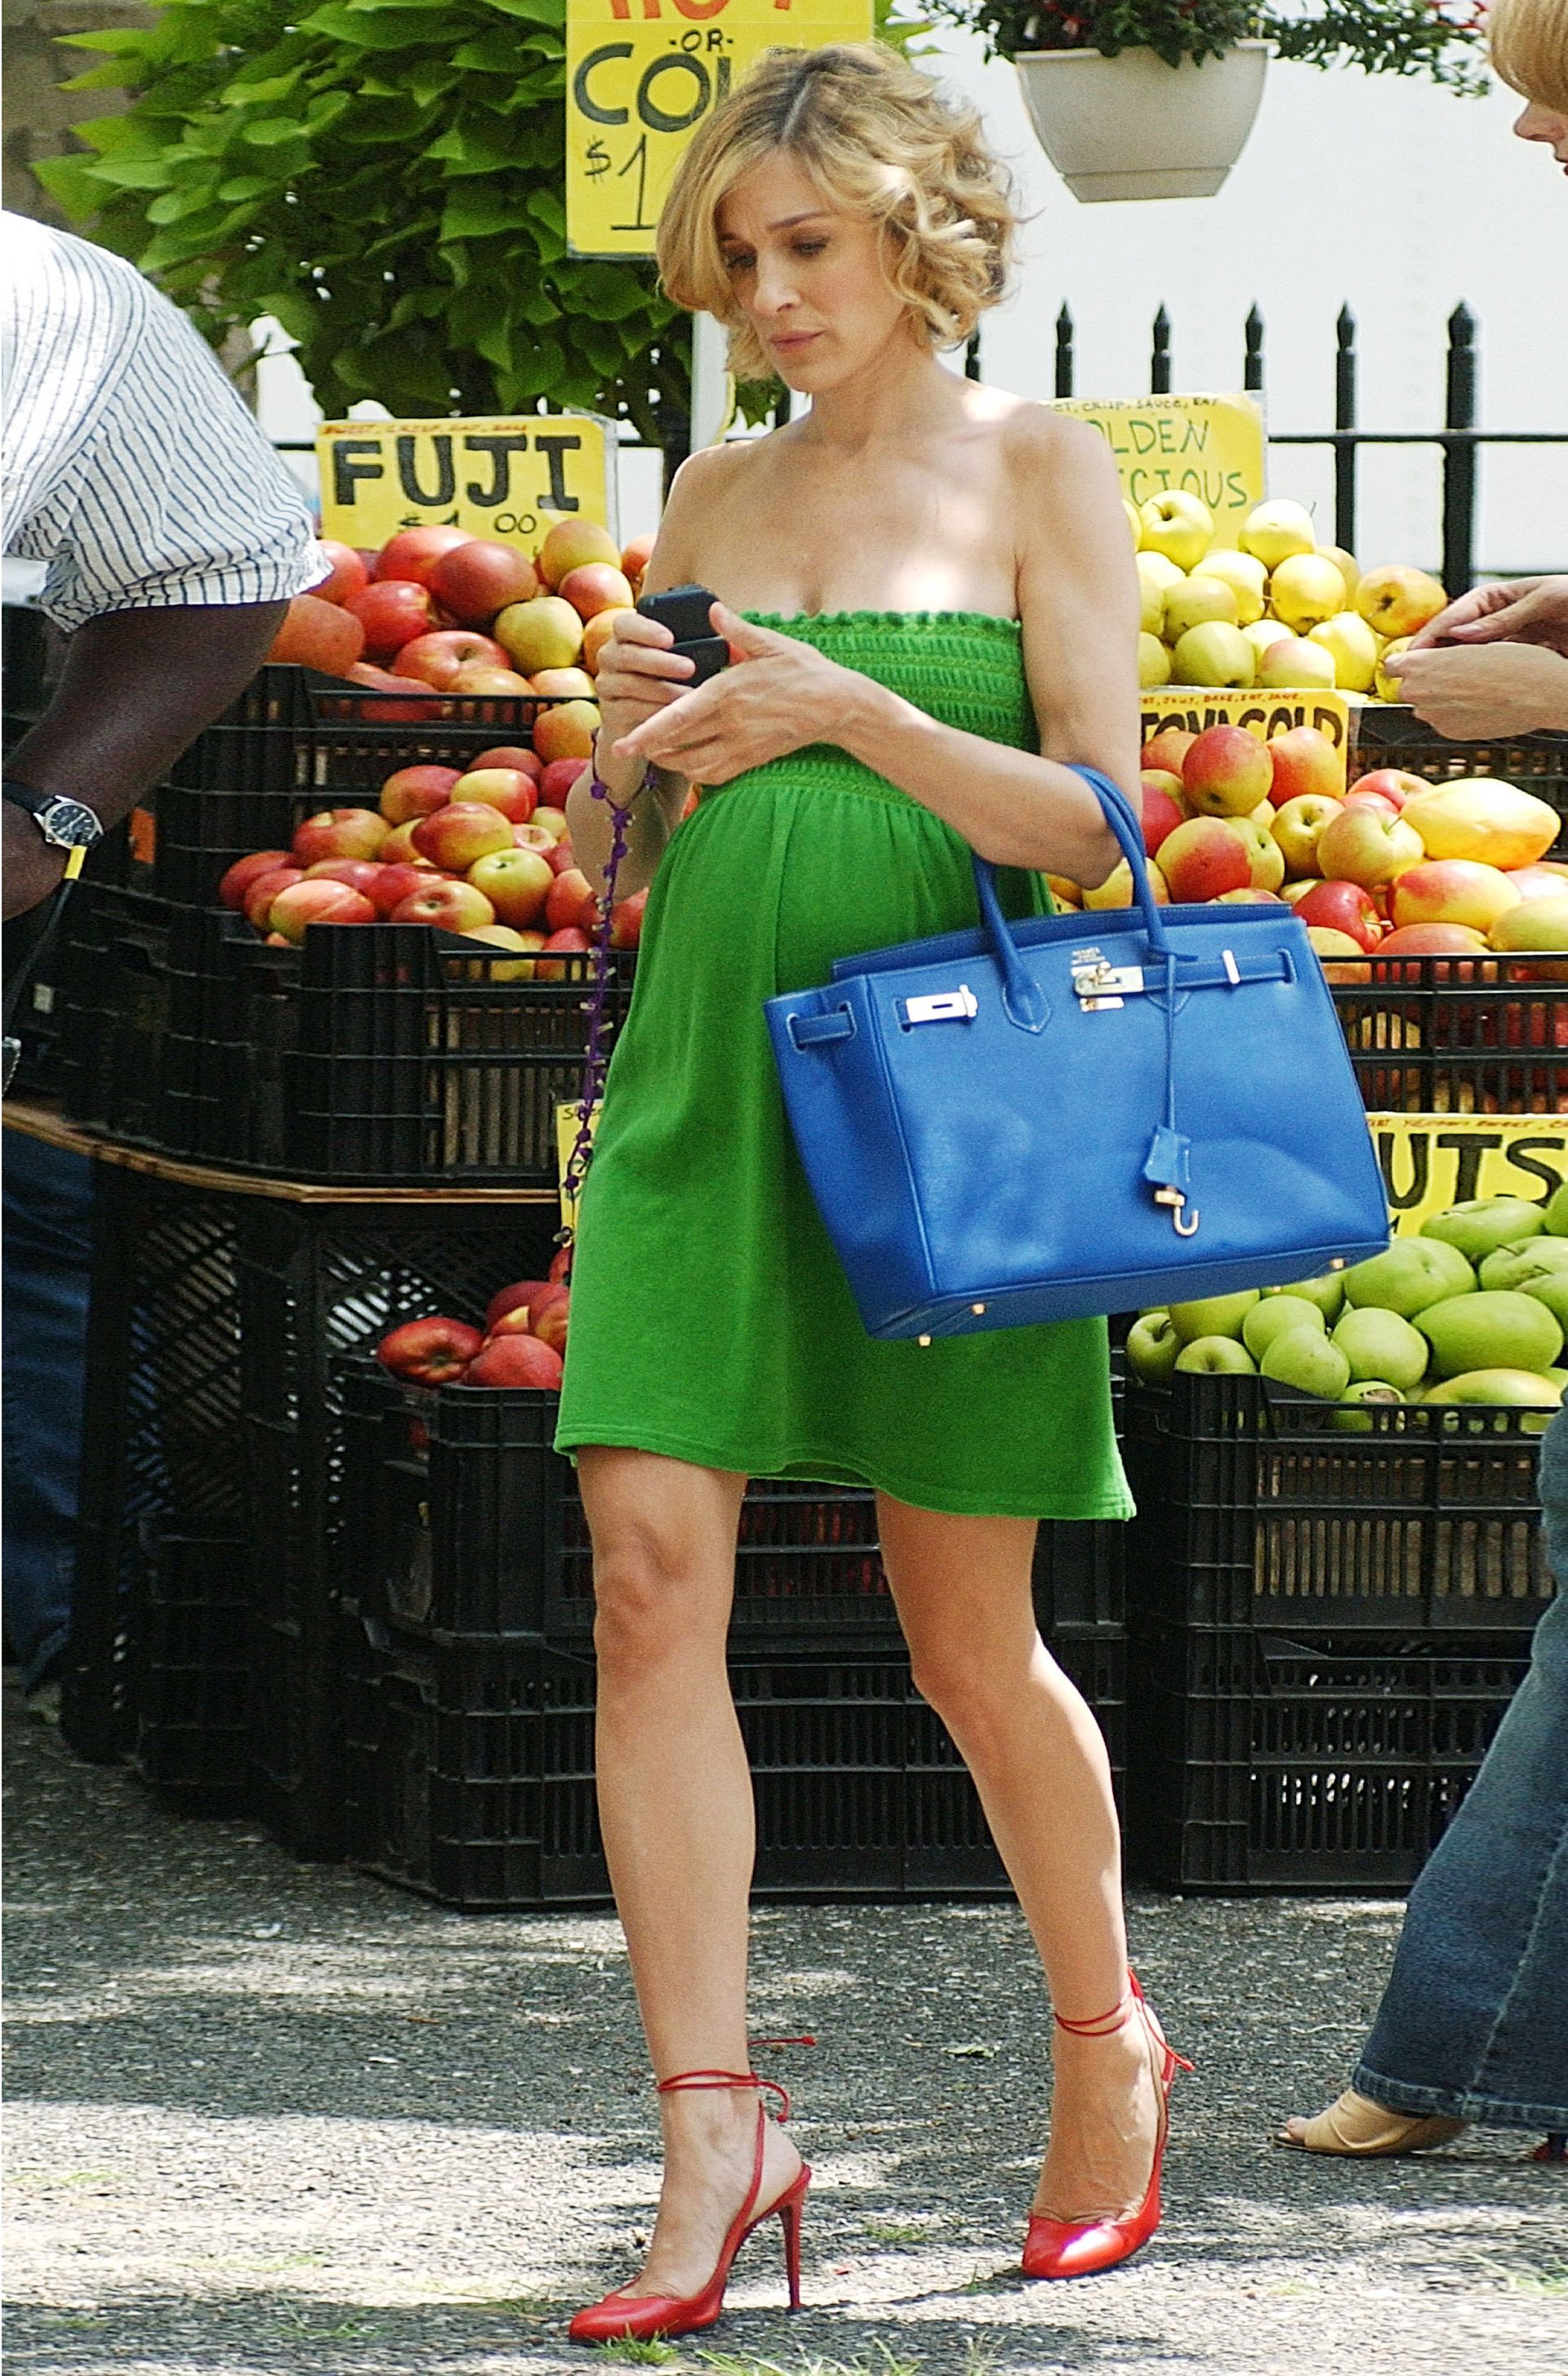 Carrie Bradshaw walking in front of a fruit stall wearing a strapless green dress, holding a blue bag and wearing red slingbacks